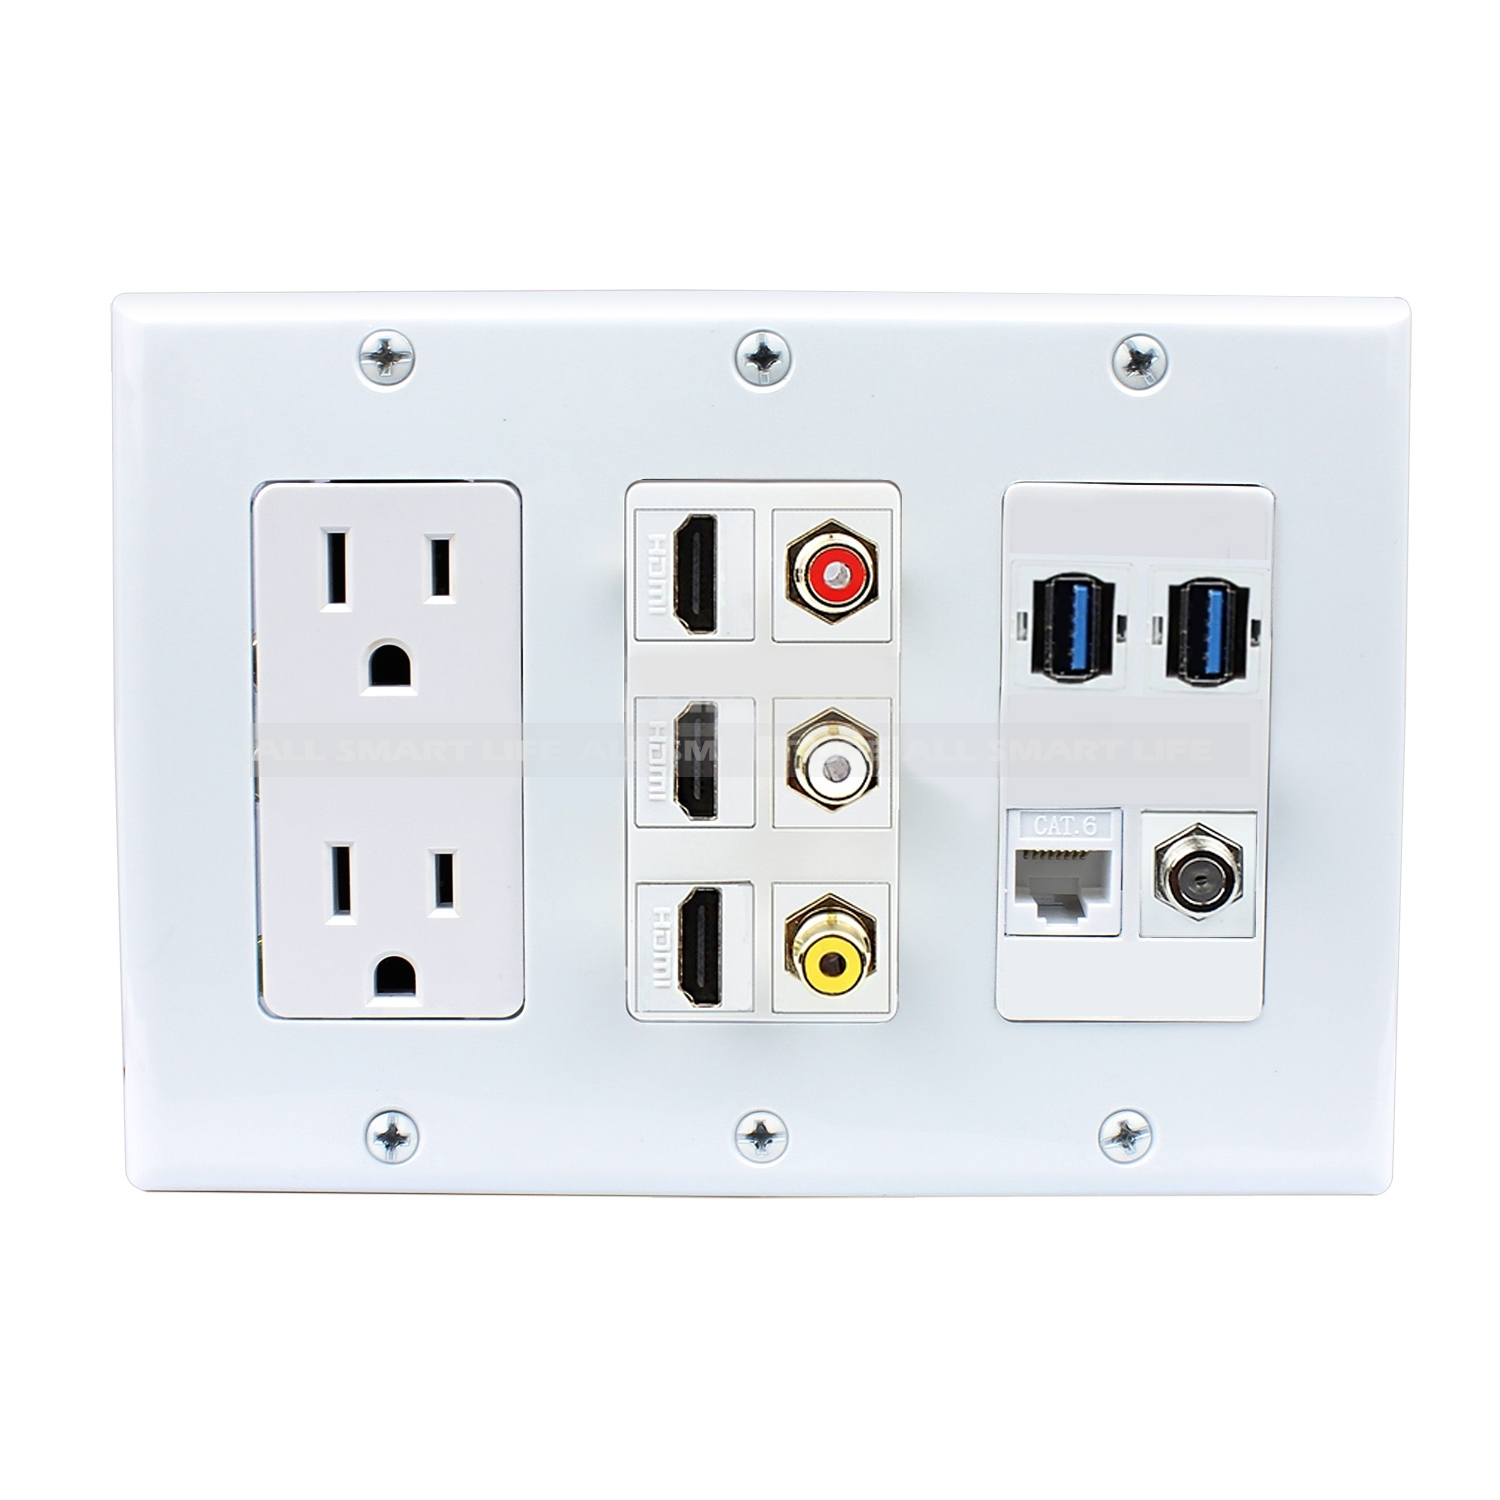 Hdmi Outlet Multifunctional Combination 2xpower Outlet 3x Hdmi 3x Rca 2x Usb